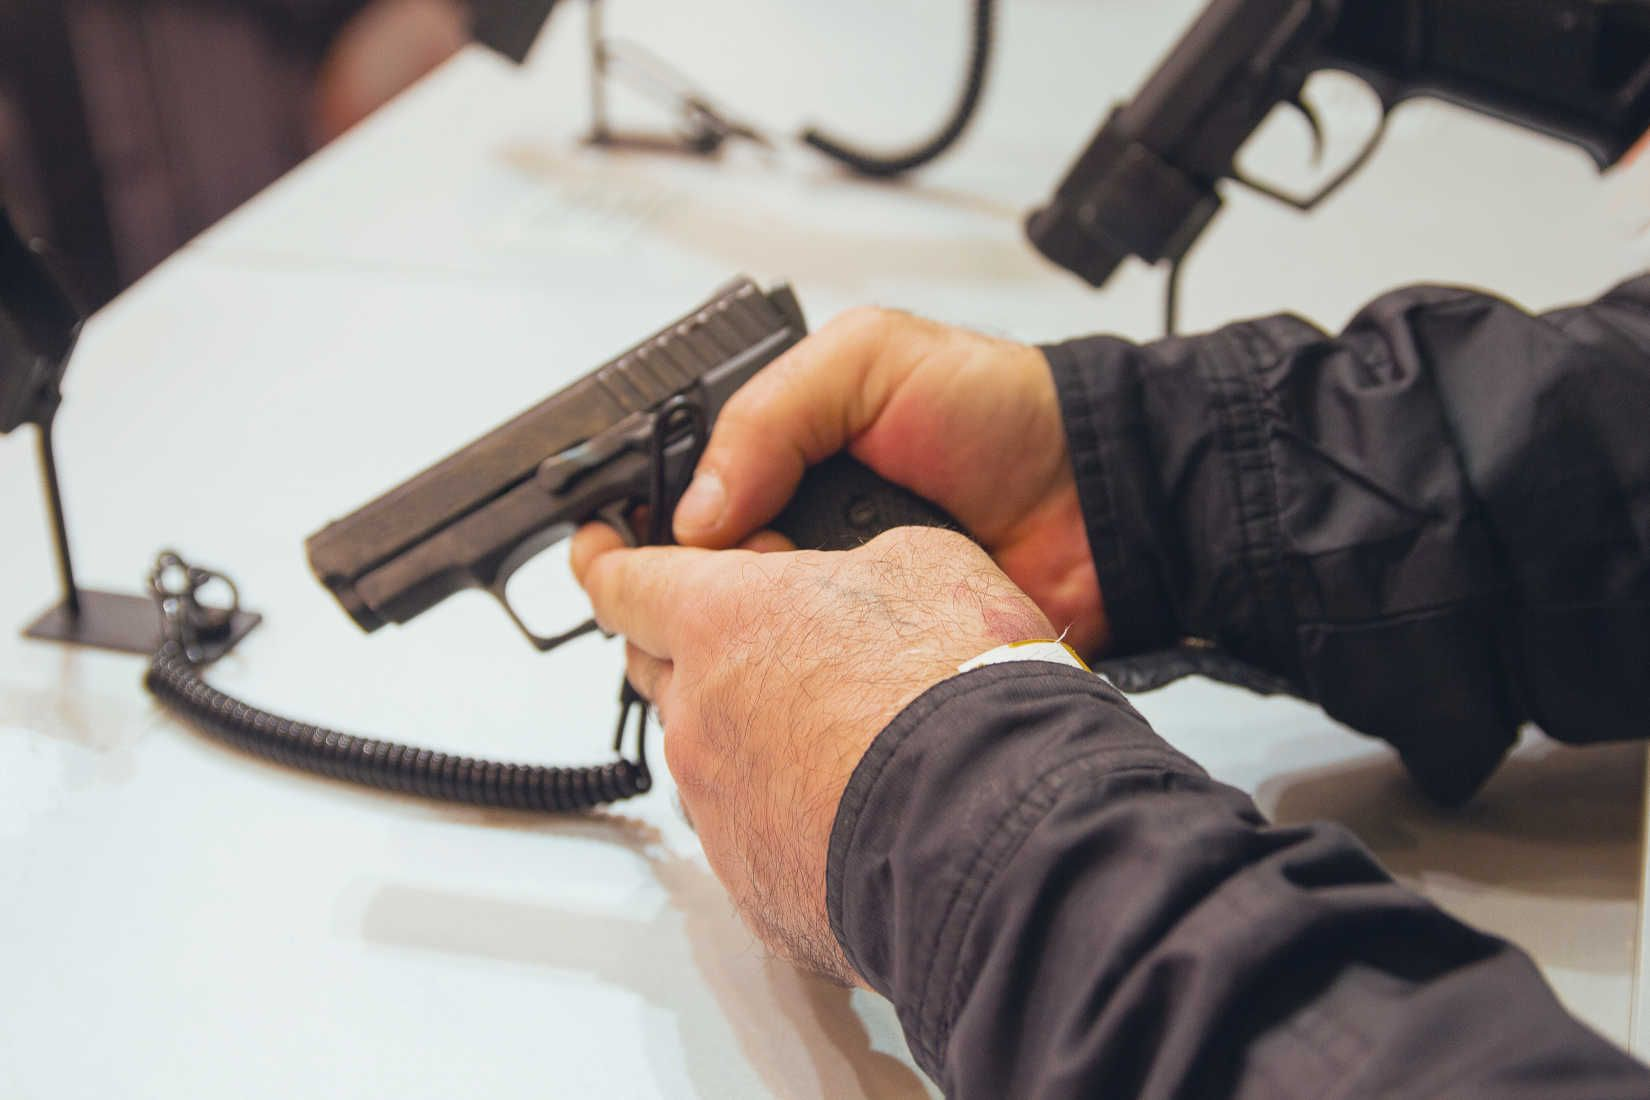 Will Congress Hold Firearms Makers Liable for Gun Crimes?